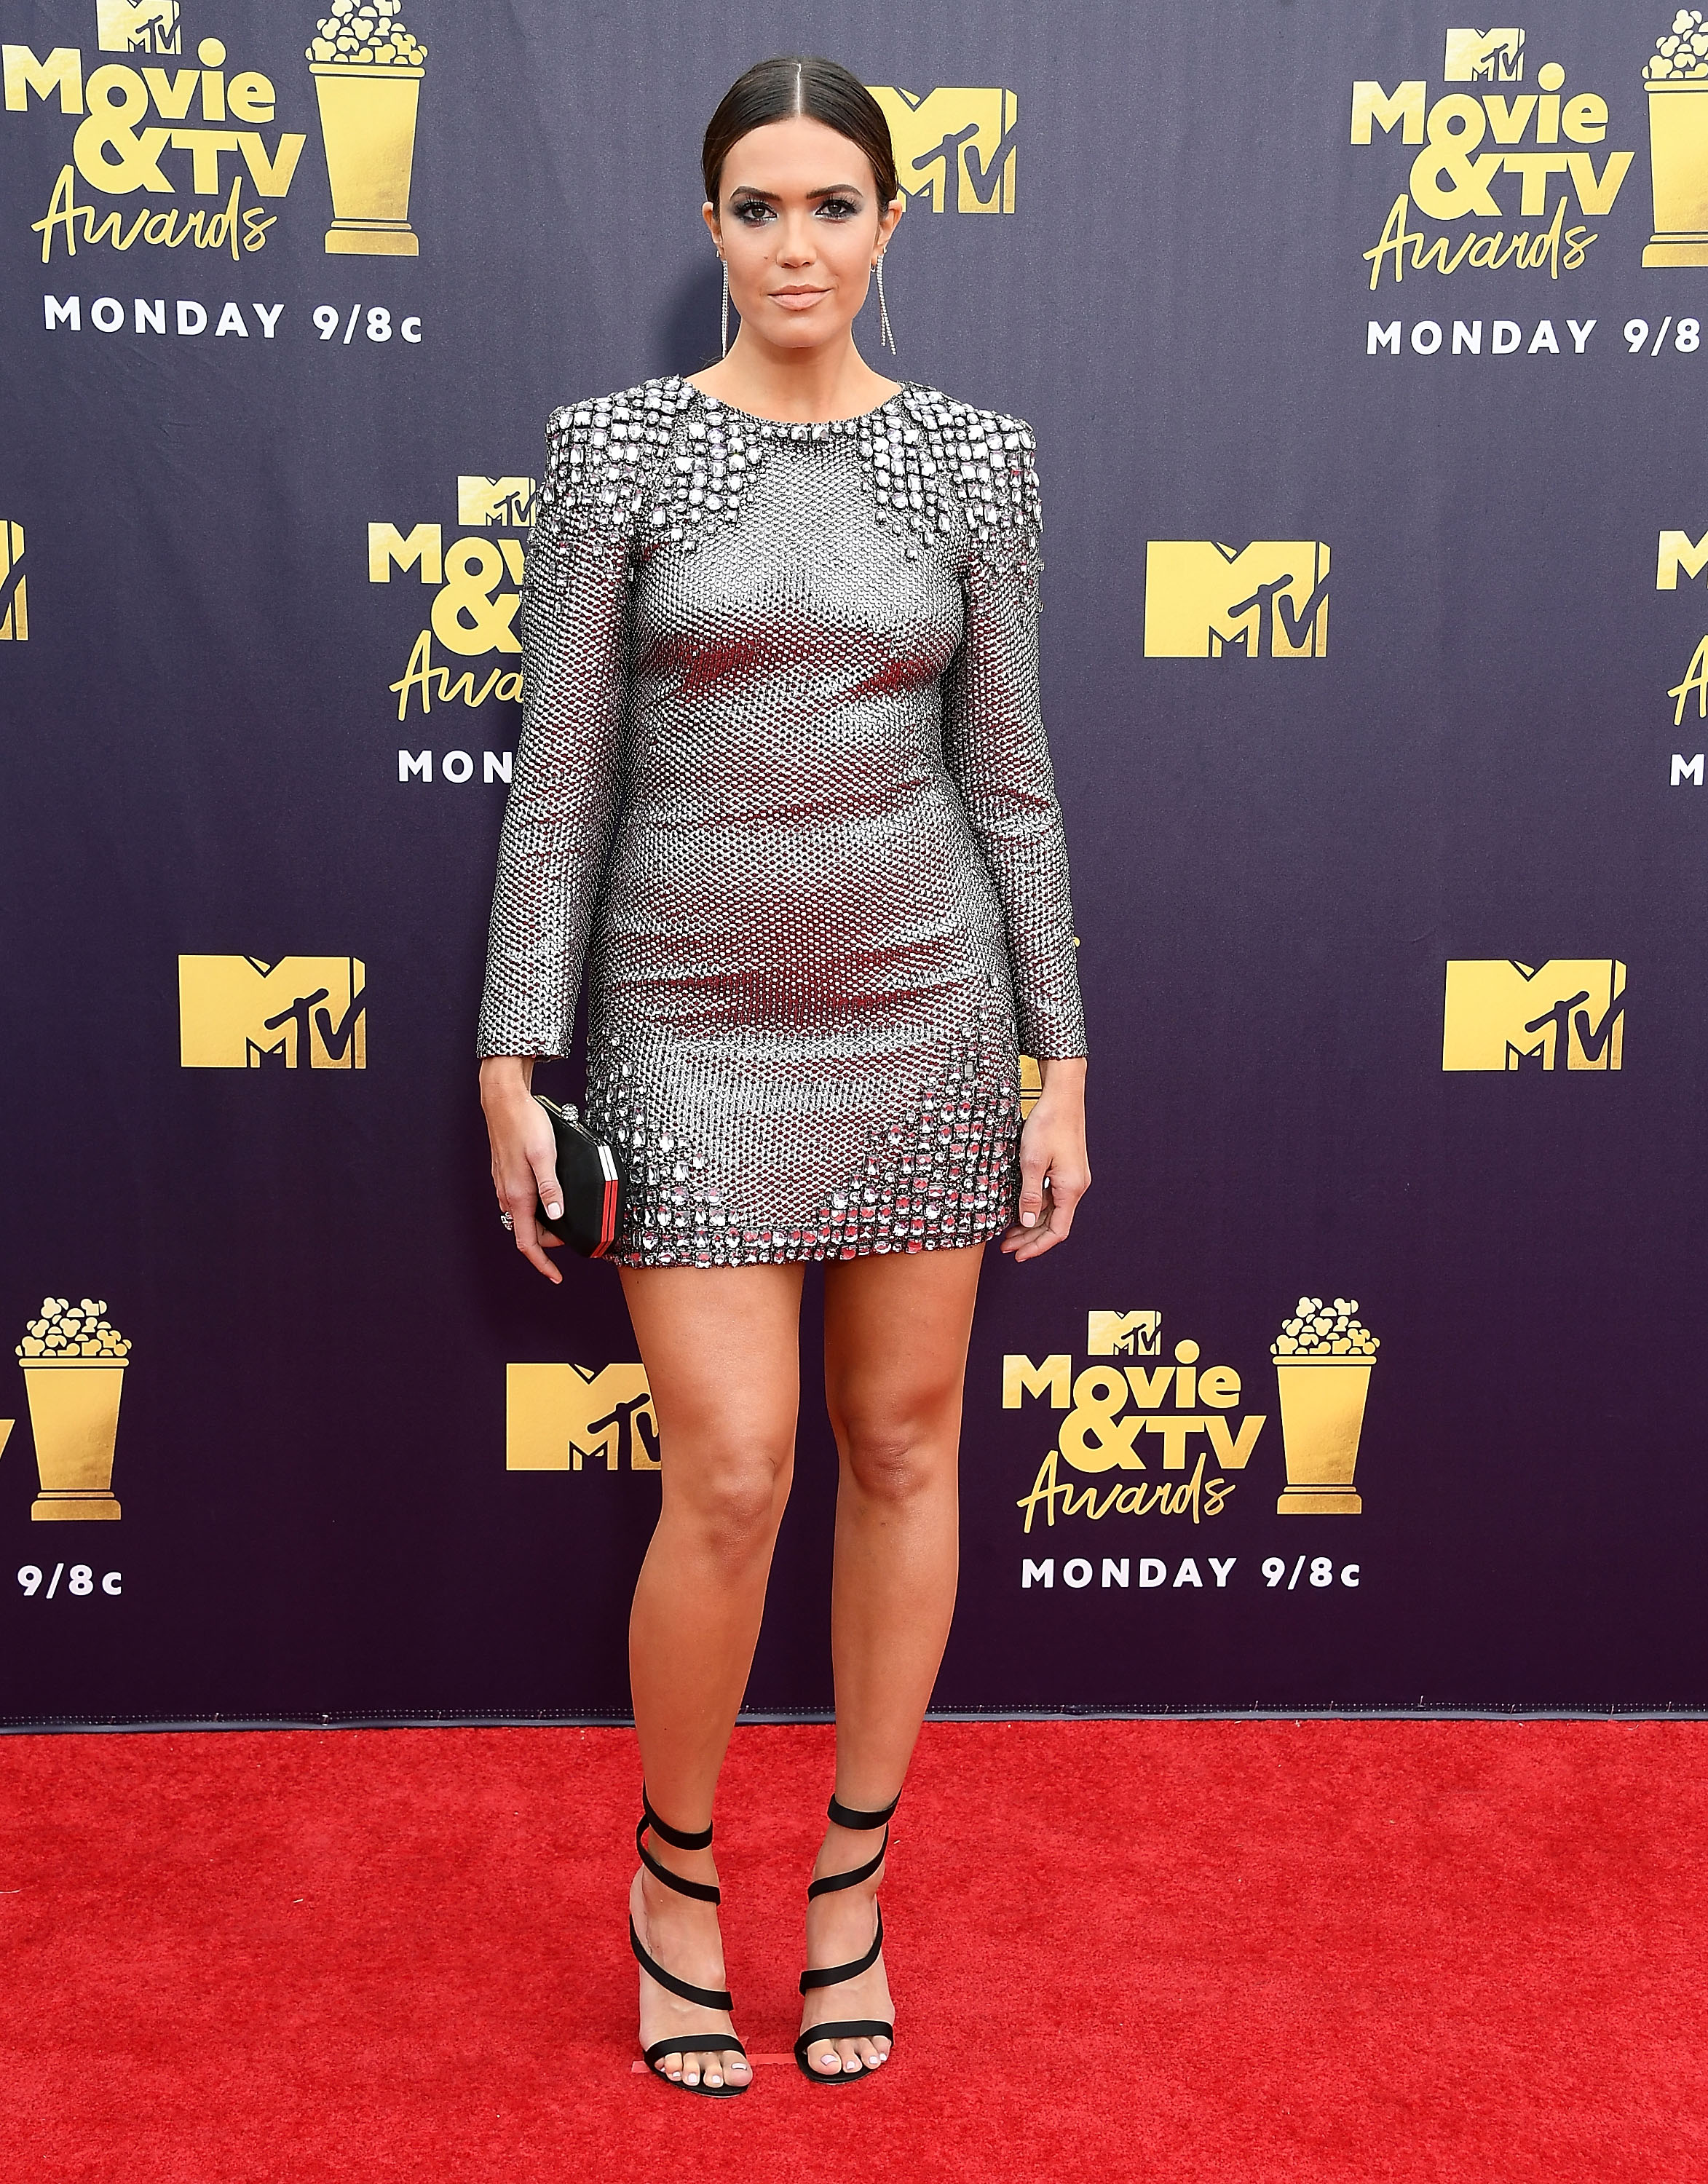 "<p>The stars have brought their sartorial A-game to the 2018 MTV Movie and TV Awards red carpet in Los Angeles.</p> <p>Turning heads like only <a href=""https://style.nine.com.au/2018/06/14/13/57/kim-kardashian-blue-hair-yeezy-hair"" target=""_blank"" draggable=""false"">Kim Kardashian-West</a> can, the beauty mogul, who brought her mum Kris Jenner along for a girls night out, rocked cornrows and a white bandeau top with a curve-hugging, silver skirt with a thigh-high slit by Versace.</p> <p>But Kardashian-West wasn't the only A-lister who stood out on the red carpet. <br /> <br /> <a href=""https://style.nine.com.au/2017/09/14/14/39/style_mandy-moore-hair-comeback"" target=""_blank"" draggable=""false"">Mandy Moore</a> channelled her inner JLo in a metallic mini dress by Alberta Ferretti, while Zendaya wowed in a structured mini dress with an exaggerated skirt by August Getty Atelier, and actress Olivia Munn put her sartorial stamp on a plunging emerald green velvet jumpsuit by Galvan London.</p> <p>Click through to take a look at the most-talked about looks of the night.</p>"